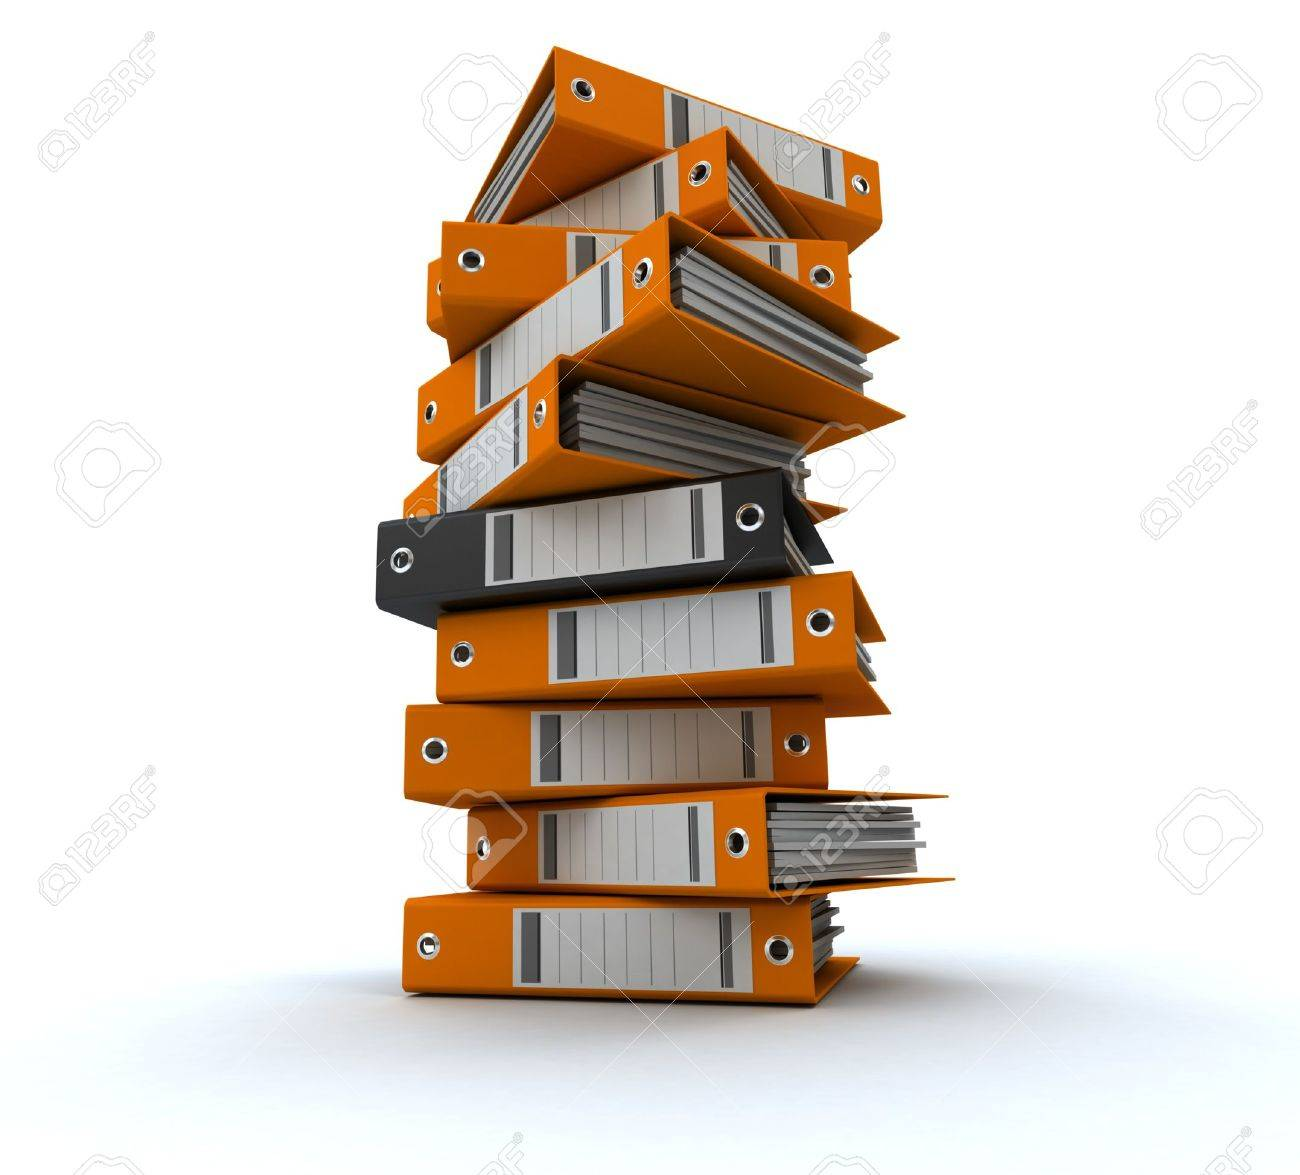 3D rendering of a pile of office ring binders Stock Photo - 14307908